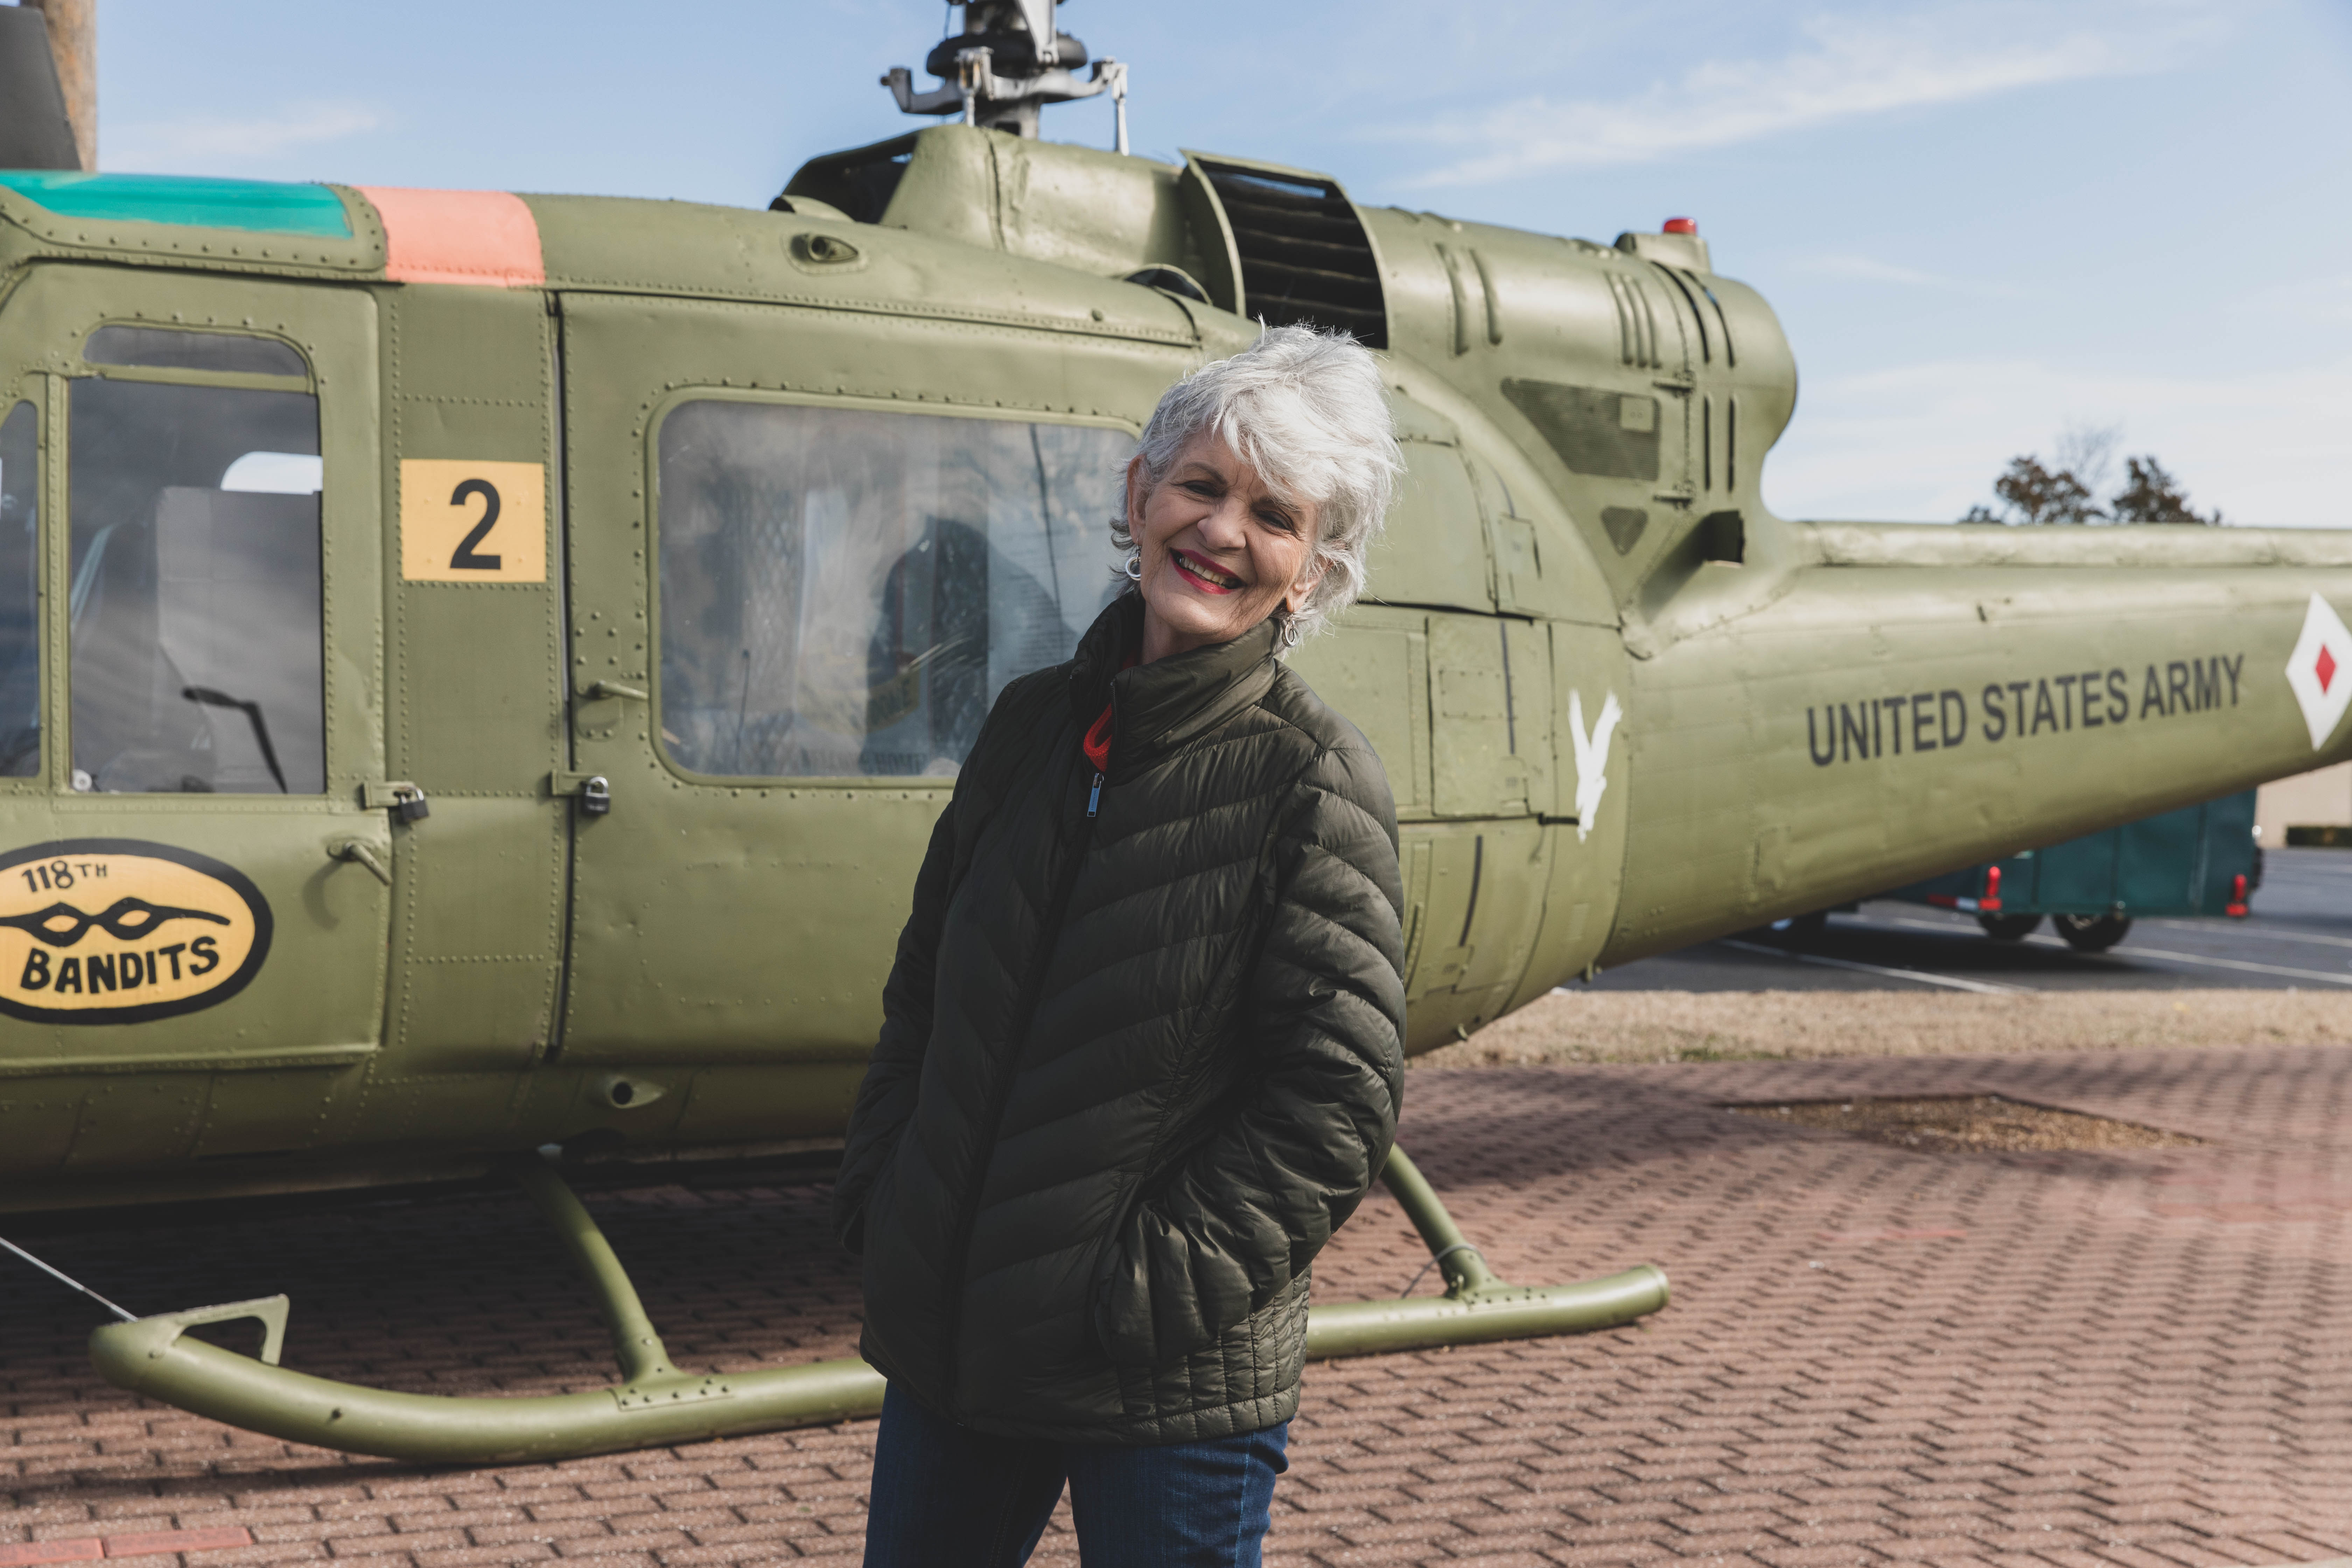 Vietnam Veteran woman standing in front of an army helicopter.